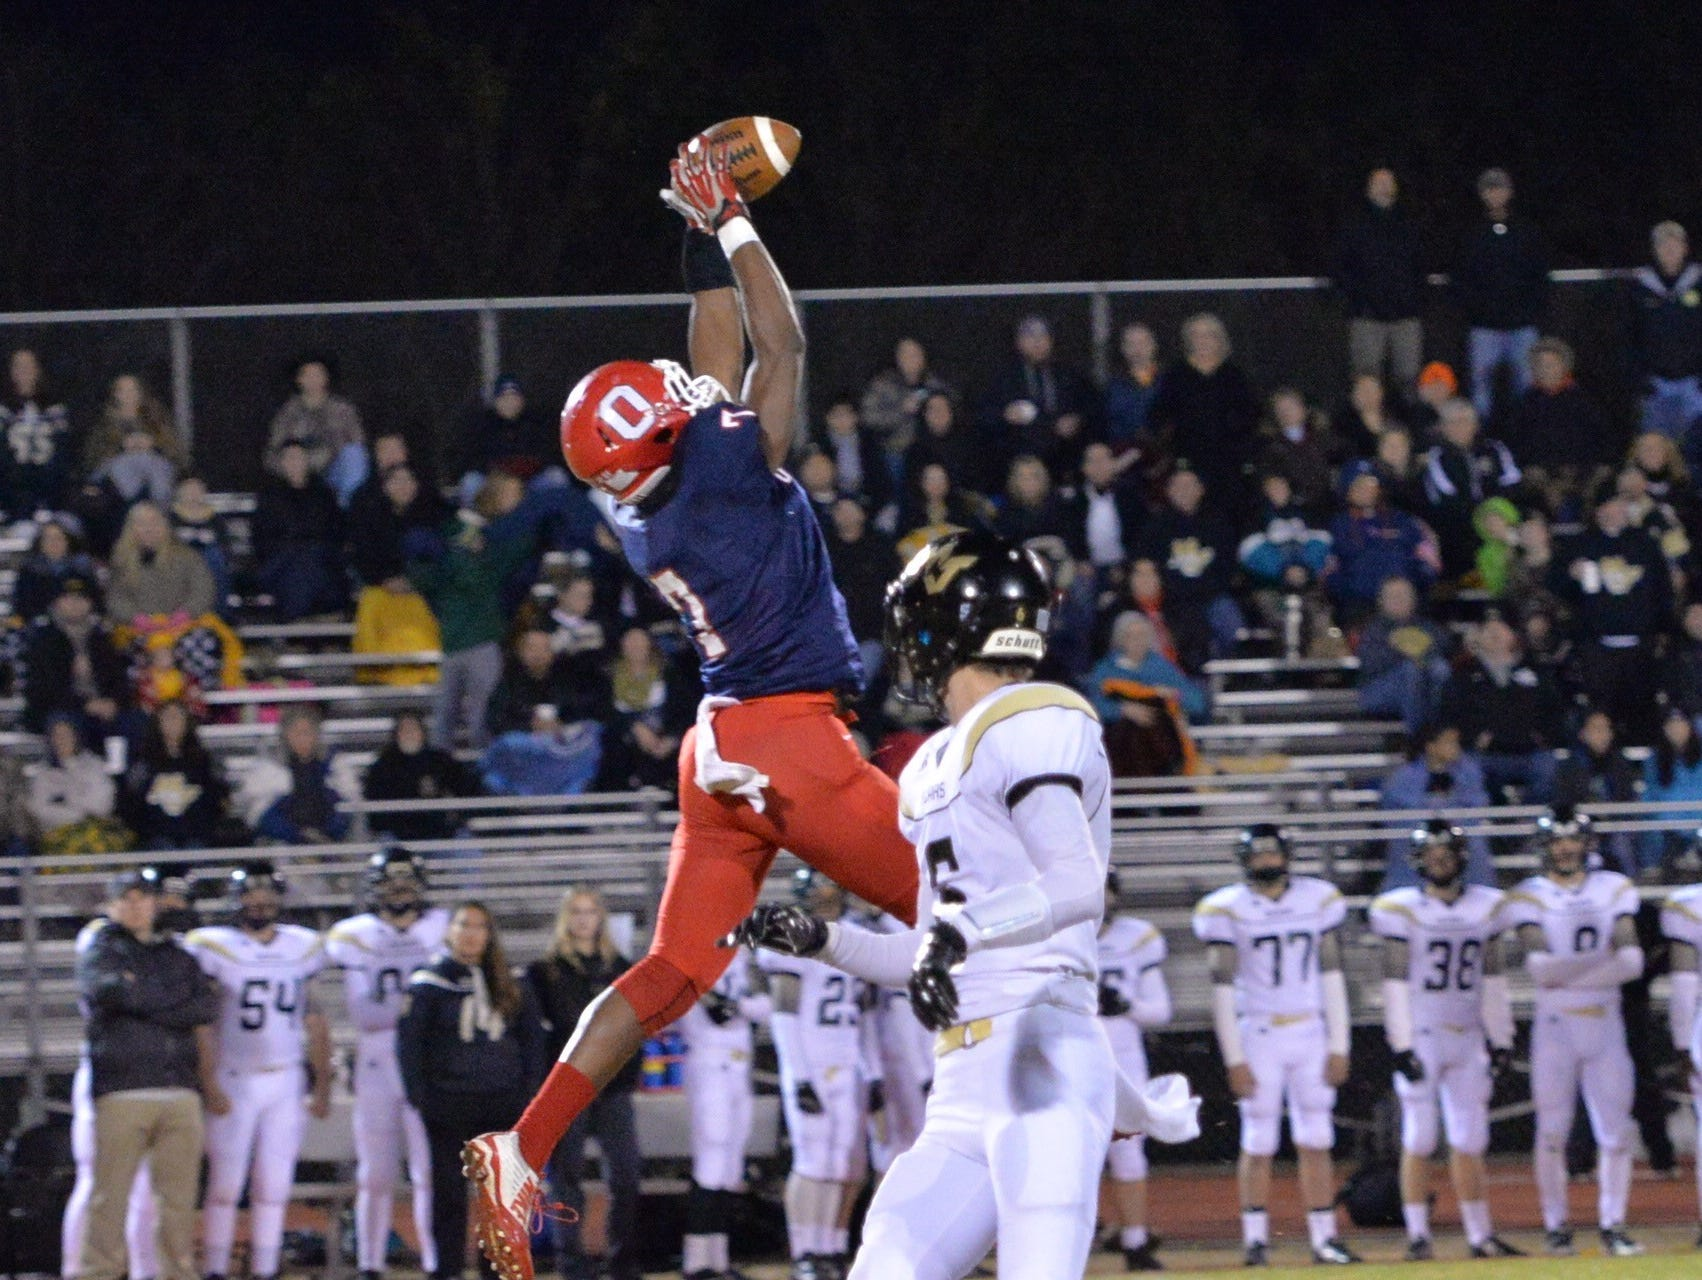 Oakland's JaCoby Stevens was selected as the No. 24 overall recruit in the nation for the class of 2017.